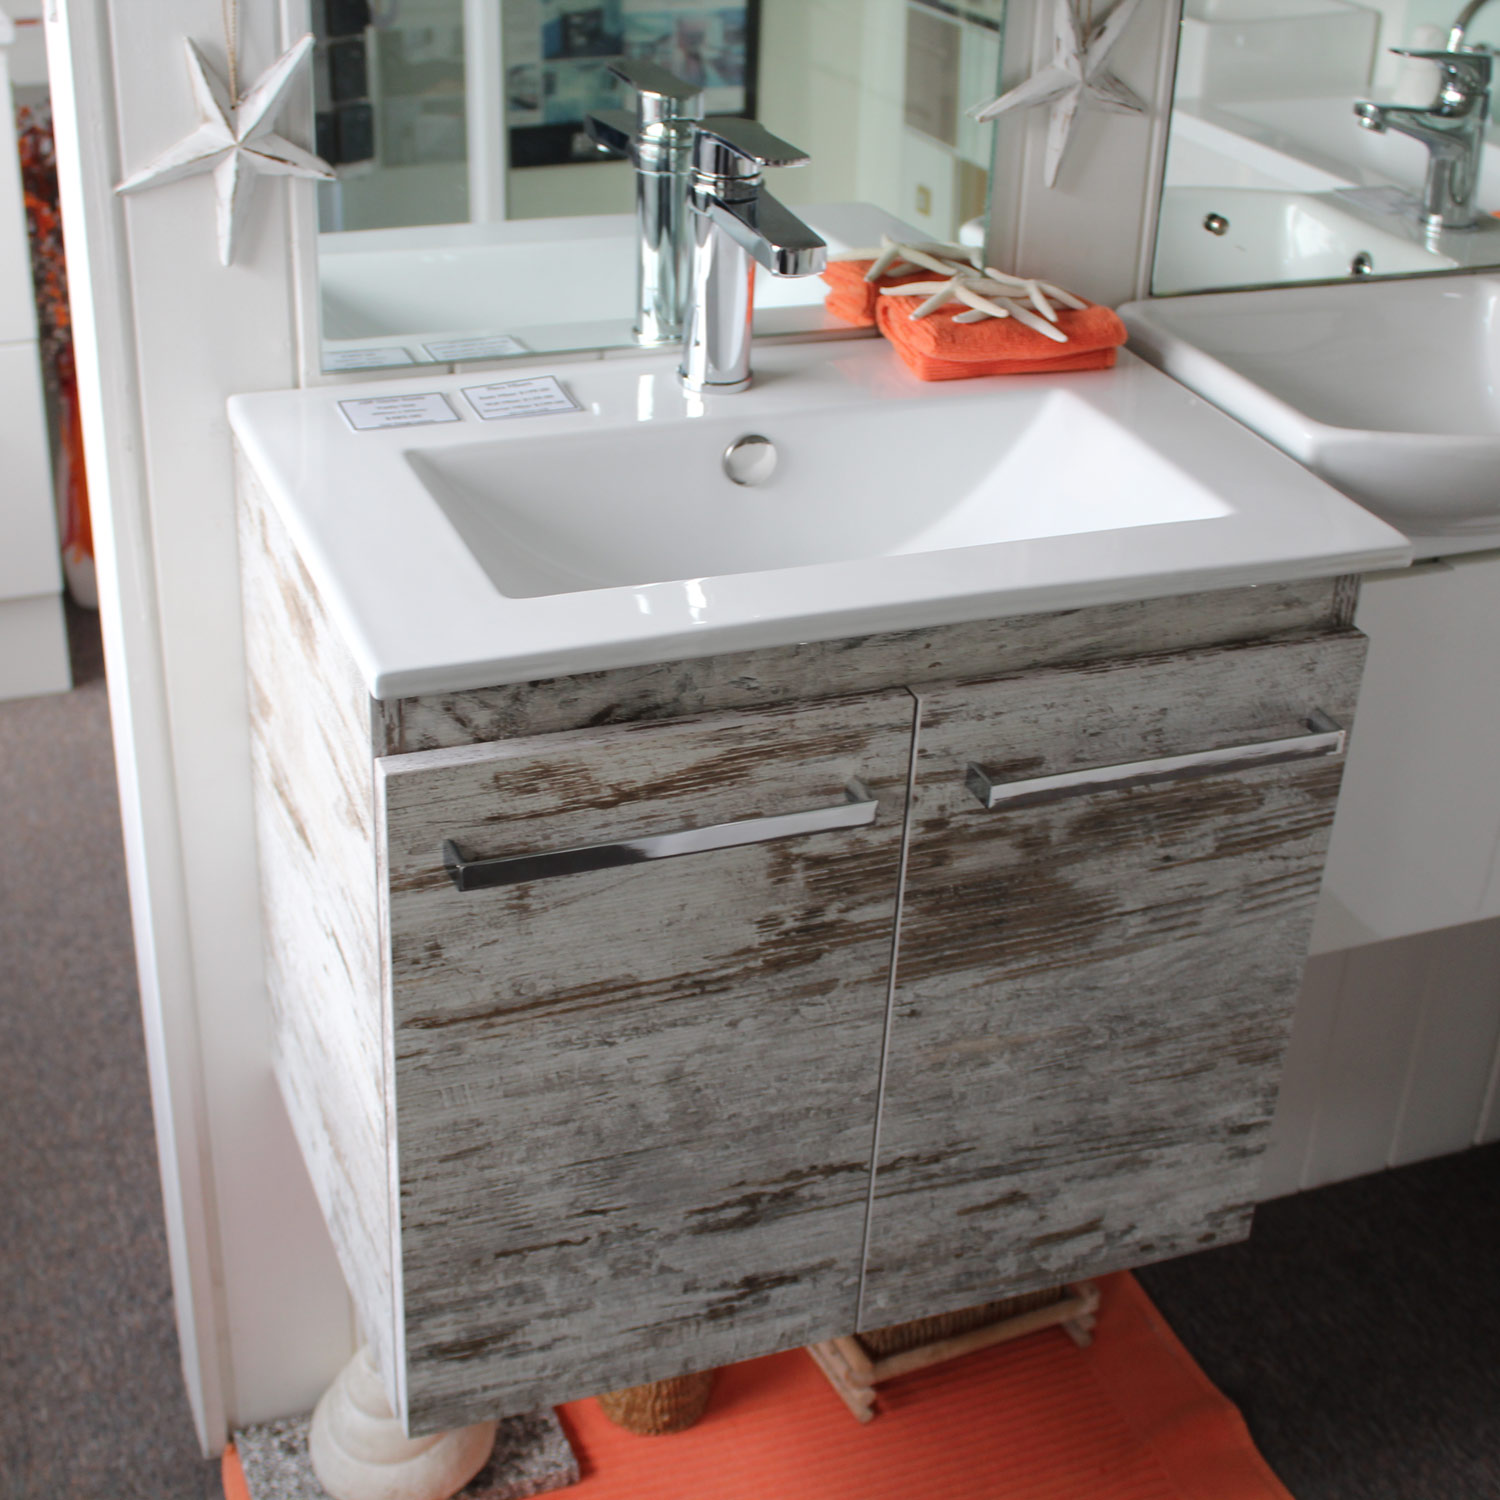 Bathroom Vanities Qld adp glacier ensuite vanity unit 600 x 395 – bathroom supplies in